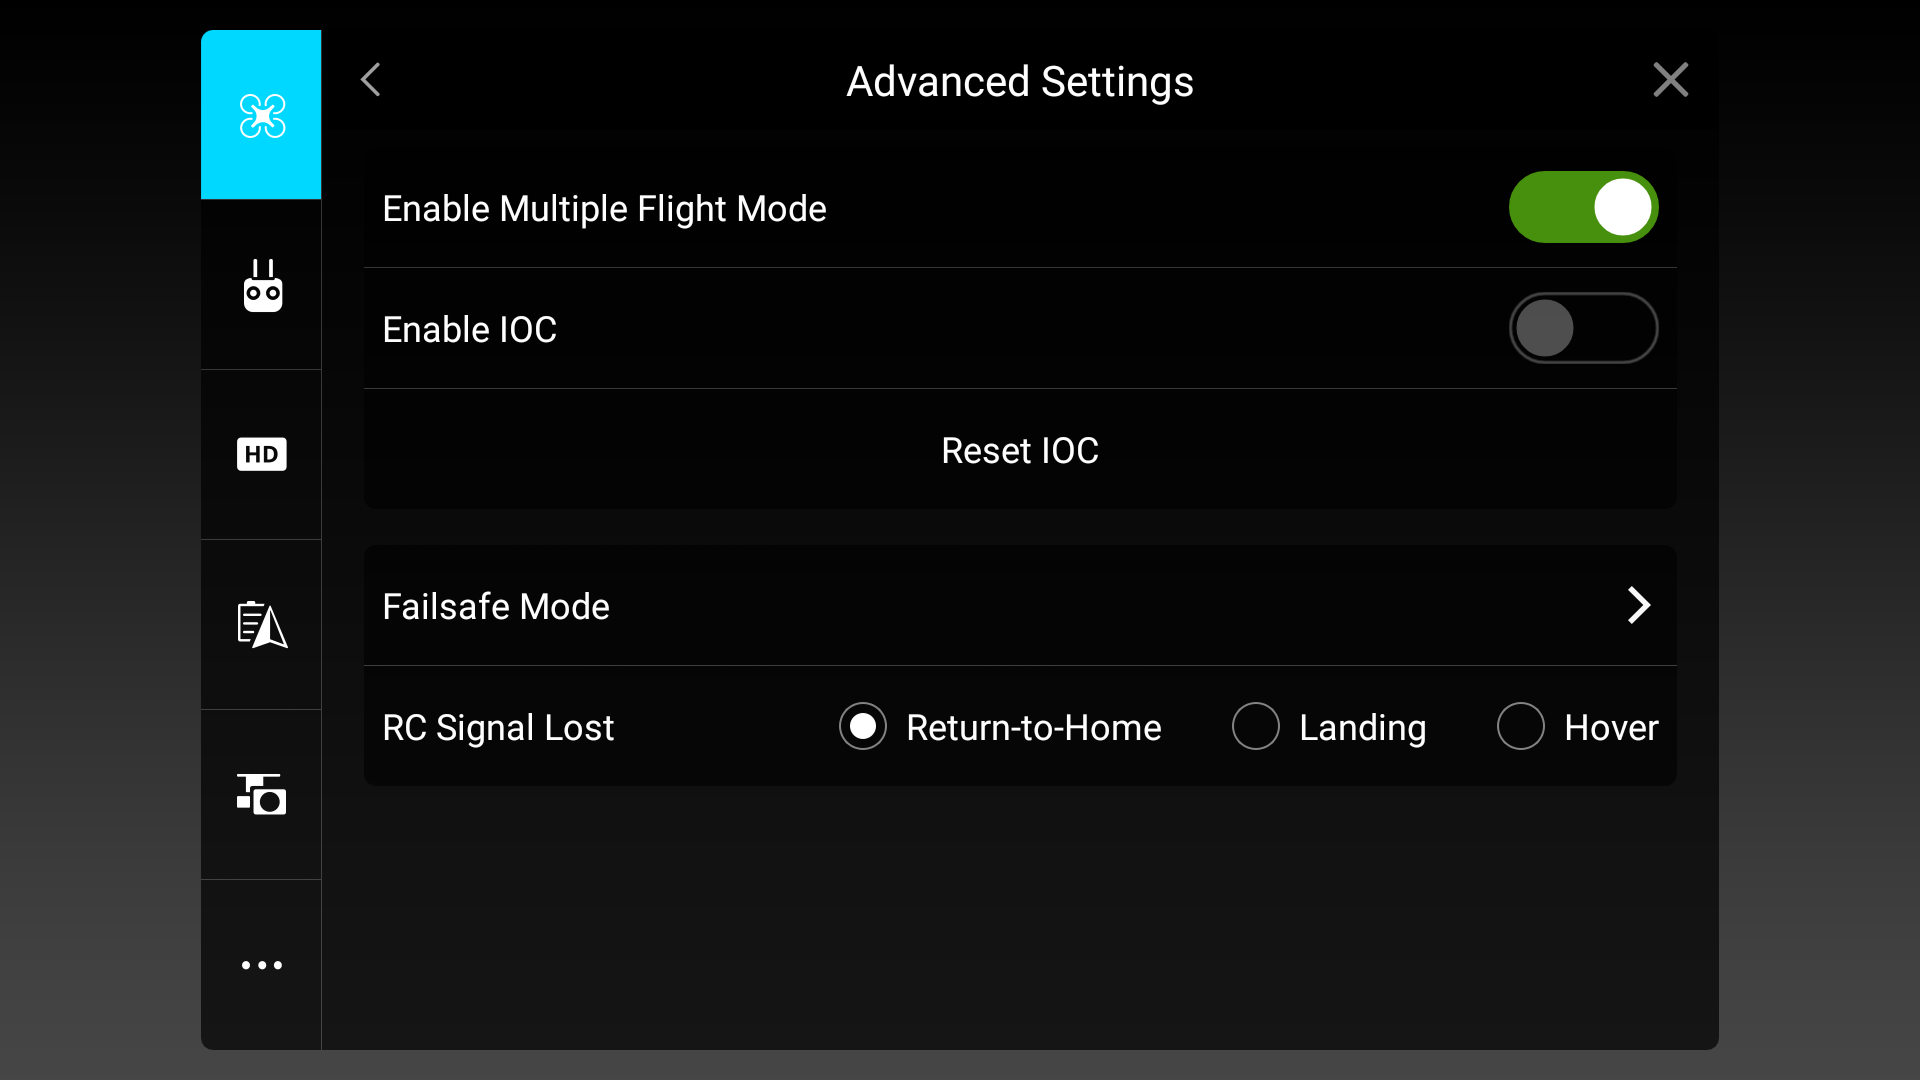 The correct settings for DroneDeploy compatibility in the DJI GO App.